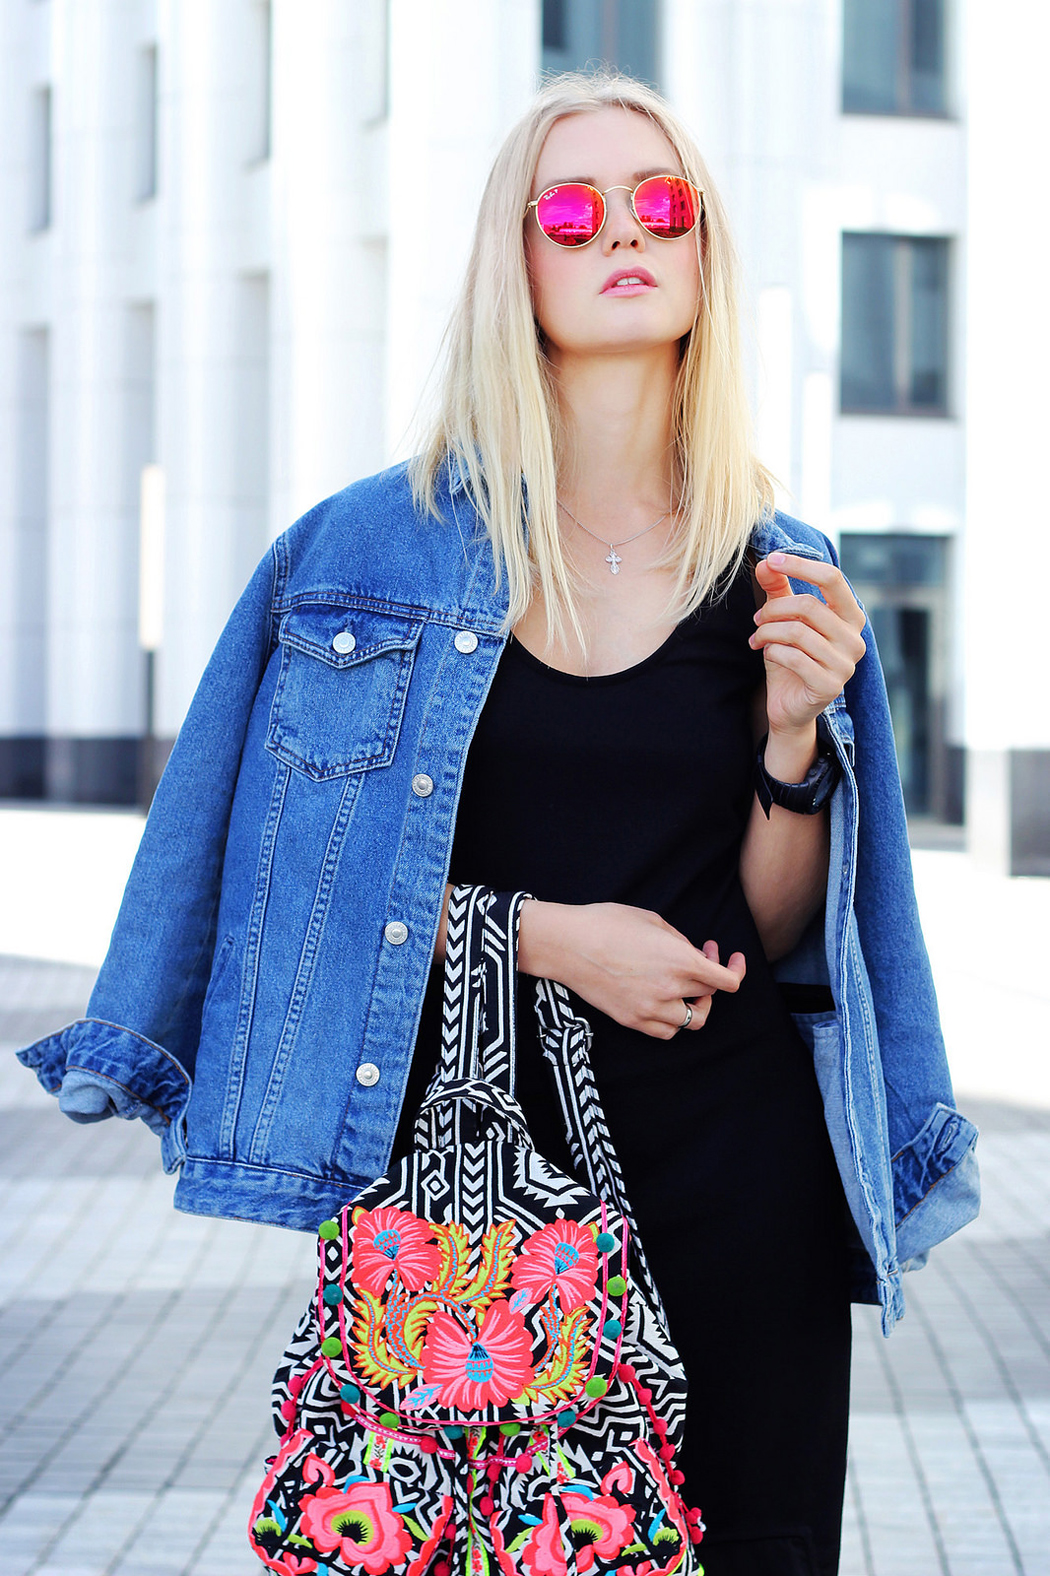 inspiration, streetstyle, autumn outfit, autumn streetstyle, annamidday, top fashion blogger, фэшн блогер, русский блогер, известный блогер, топовый блогер, russian bloger, top russian blogger, streetstyle, streetfashion, russian fashion blogger, blogger, fashion, style, fashionista, модный блогер, российский блогер, ТОП блогер, ootd, lookoftheday, look, популярный блогер, российский модный блогер, annamidday, top russian blogger, summer look, nike, pull&bear, htc, htc one mini 2 review, calvin klein, ray-ban, платье с кроссовками, бойфренд джинсовка, boyfriend denim, asos, dress with backpack, платье с рюкзаком, travel blogger, russian travel blogger, трэвэл блогер